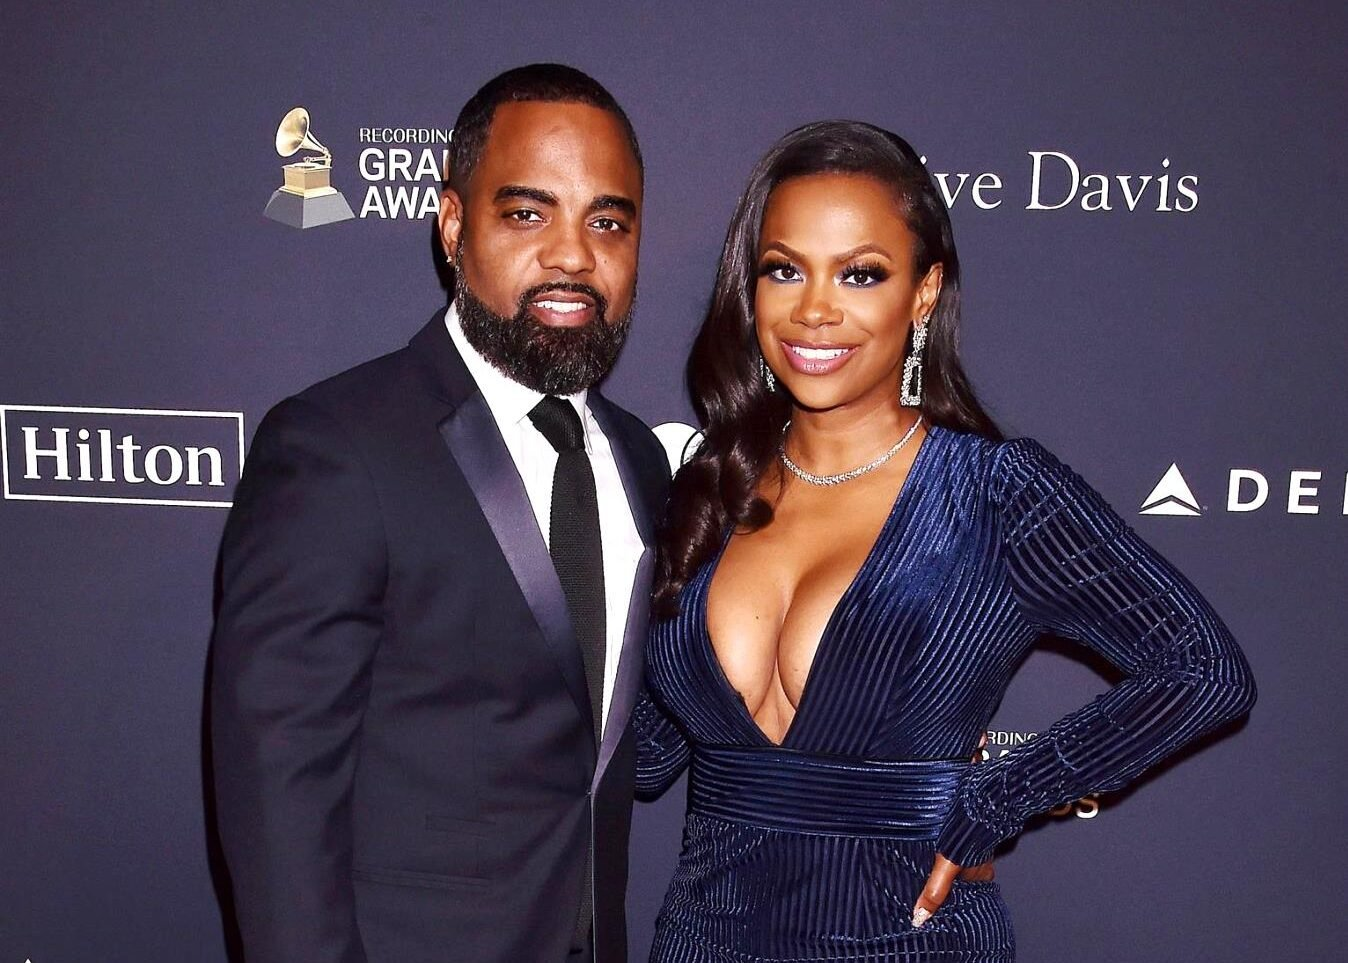 Kandi Burruss And Todd Tucker Are The Winning Team In These Photos